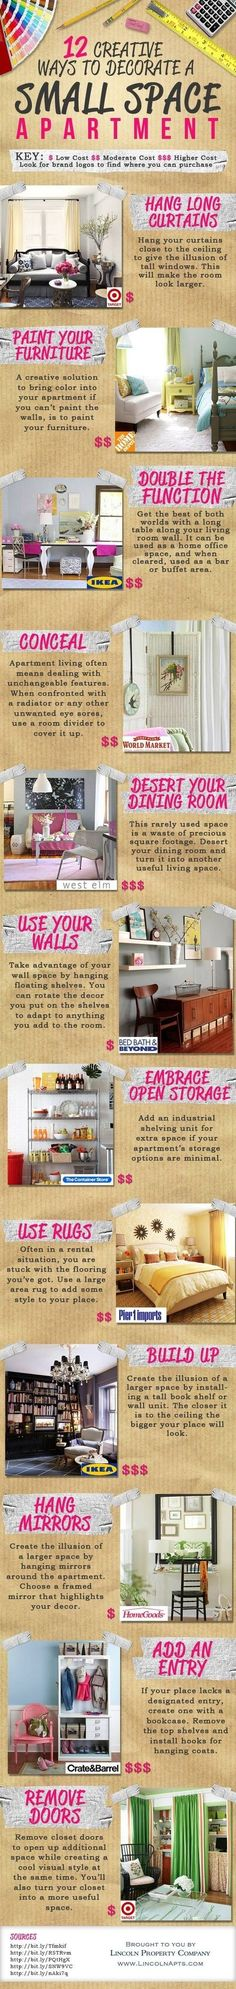 Small Space Decorating ideas - like this!